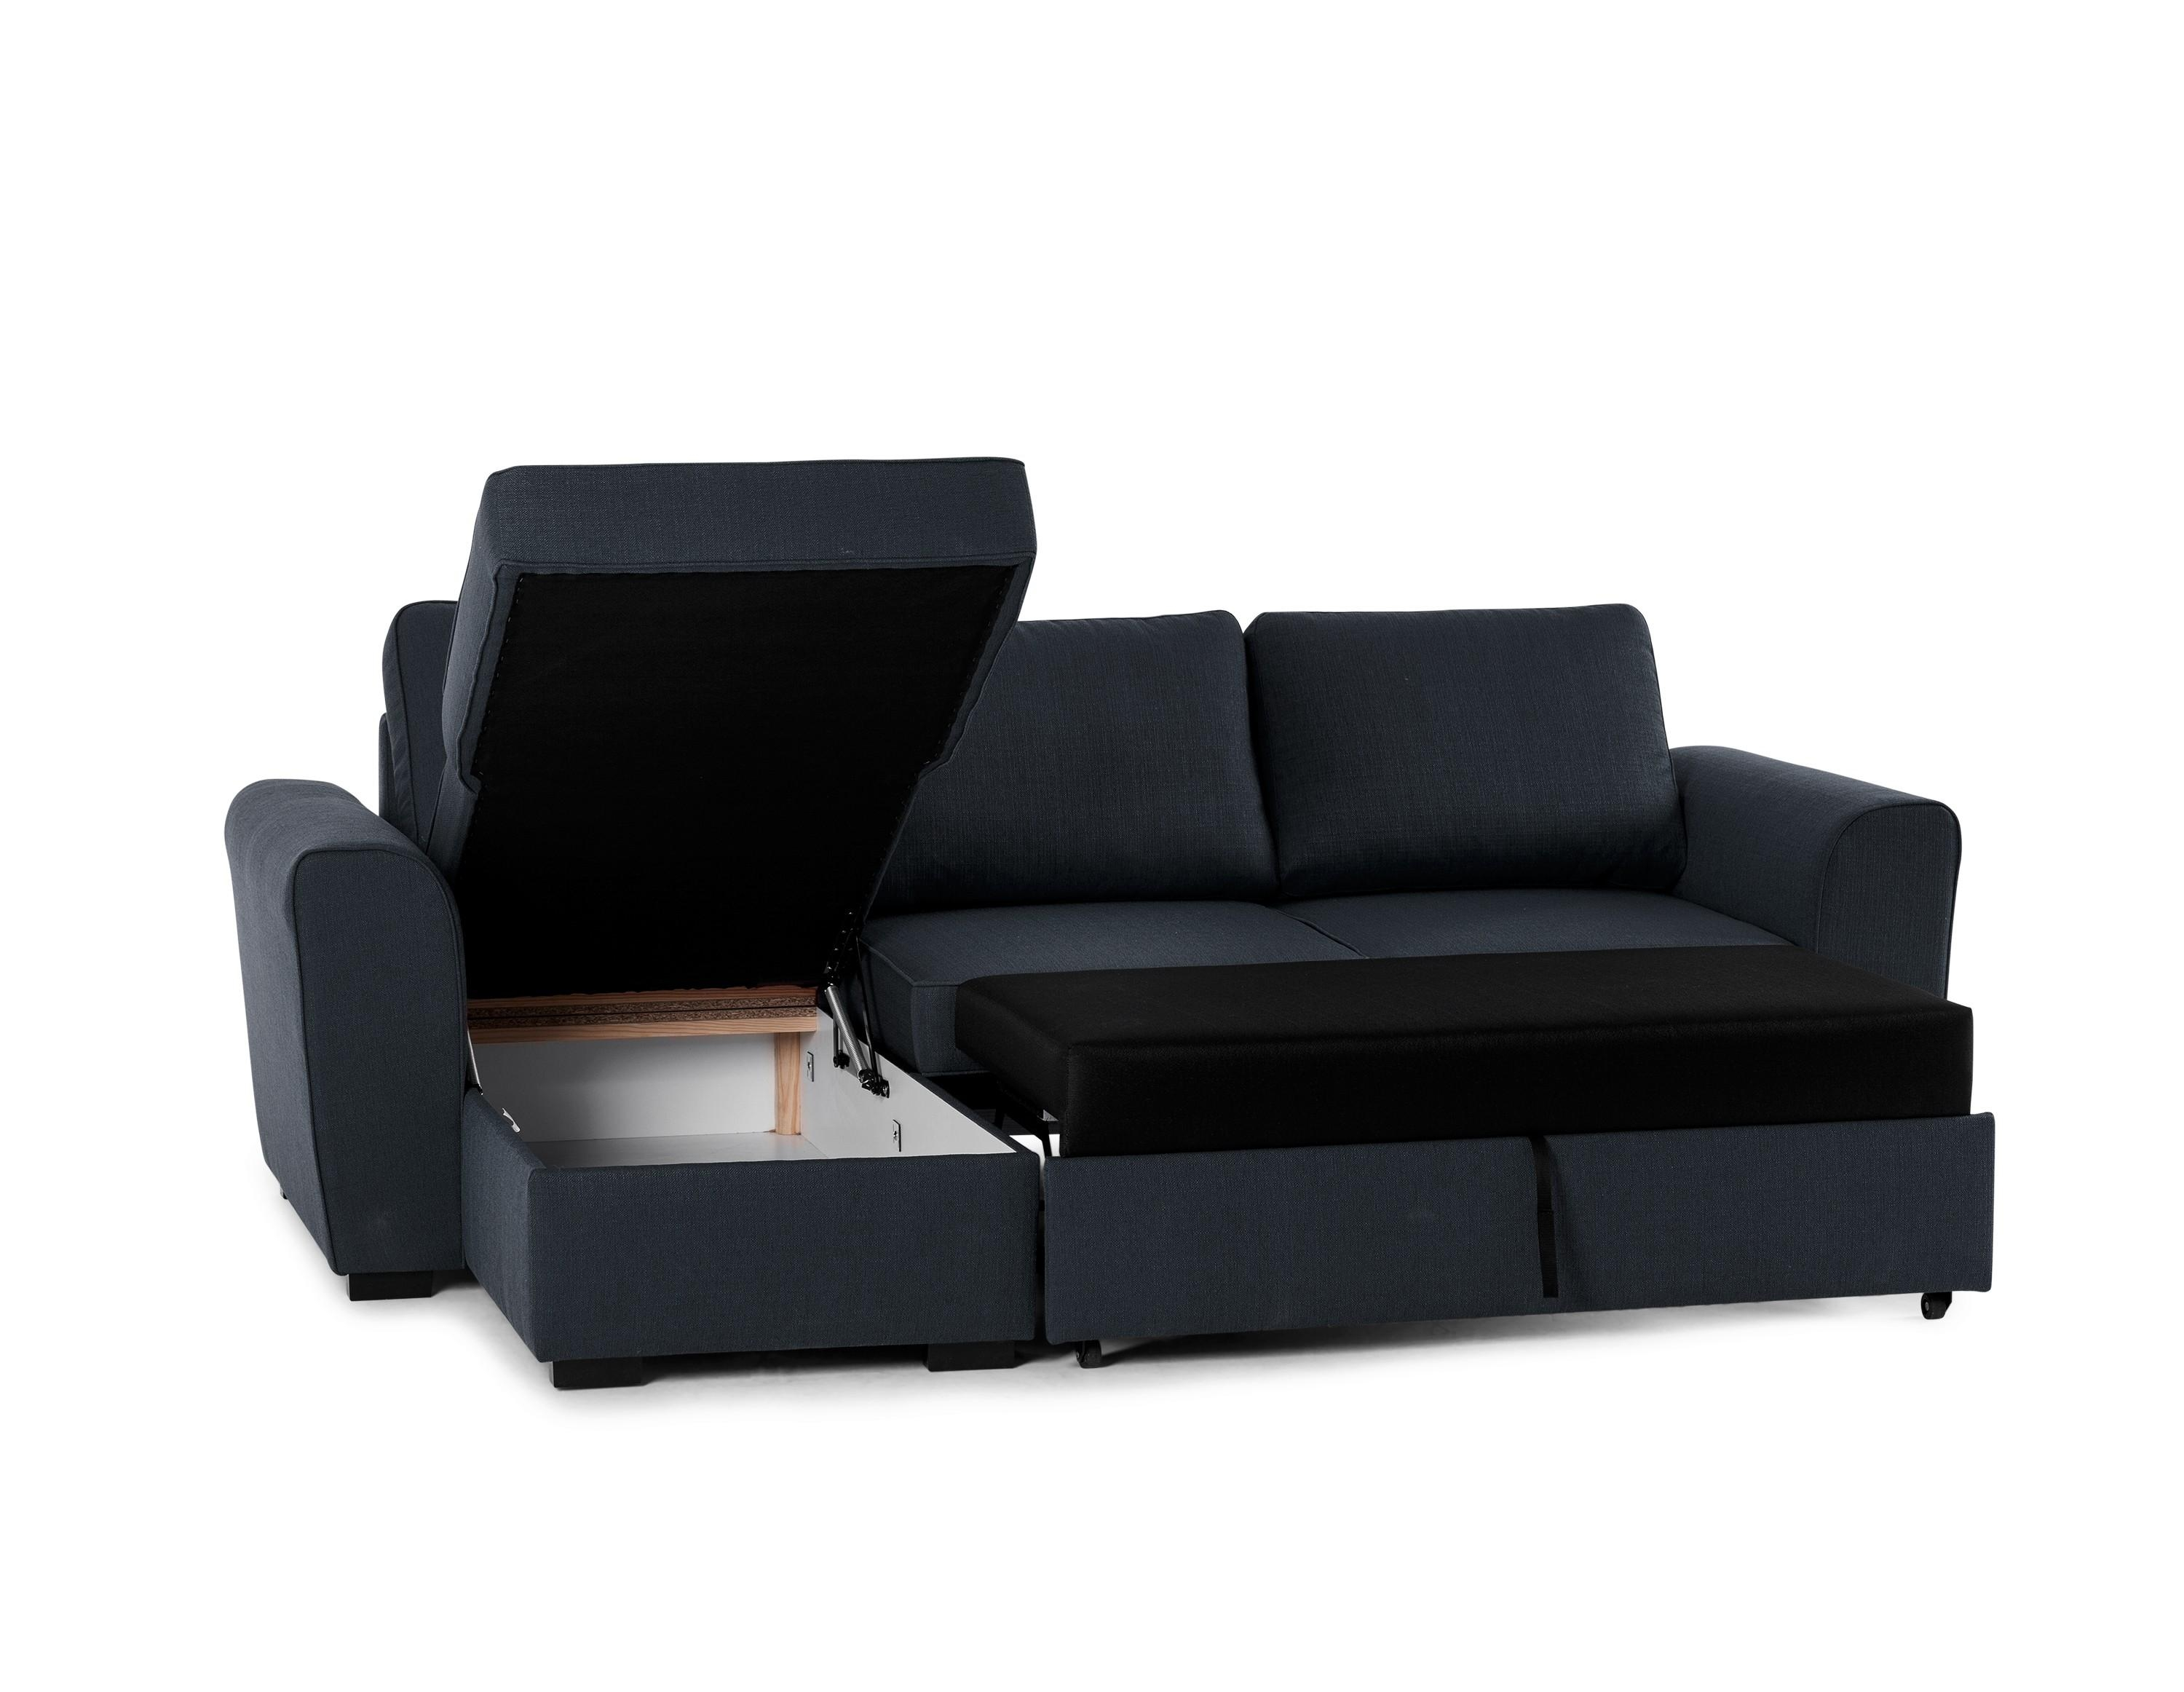 Sofa: Cozy Sears Sofa Bed For Elegant Tufted Sofa Design Ideas With Regard To Sofas With Beds (View 10 of 22)